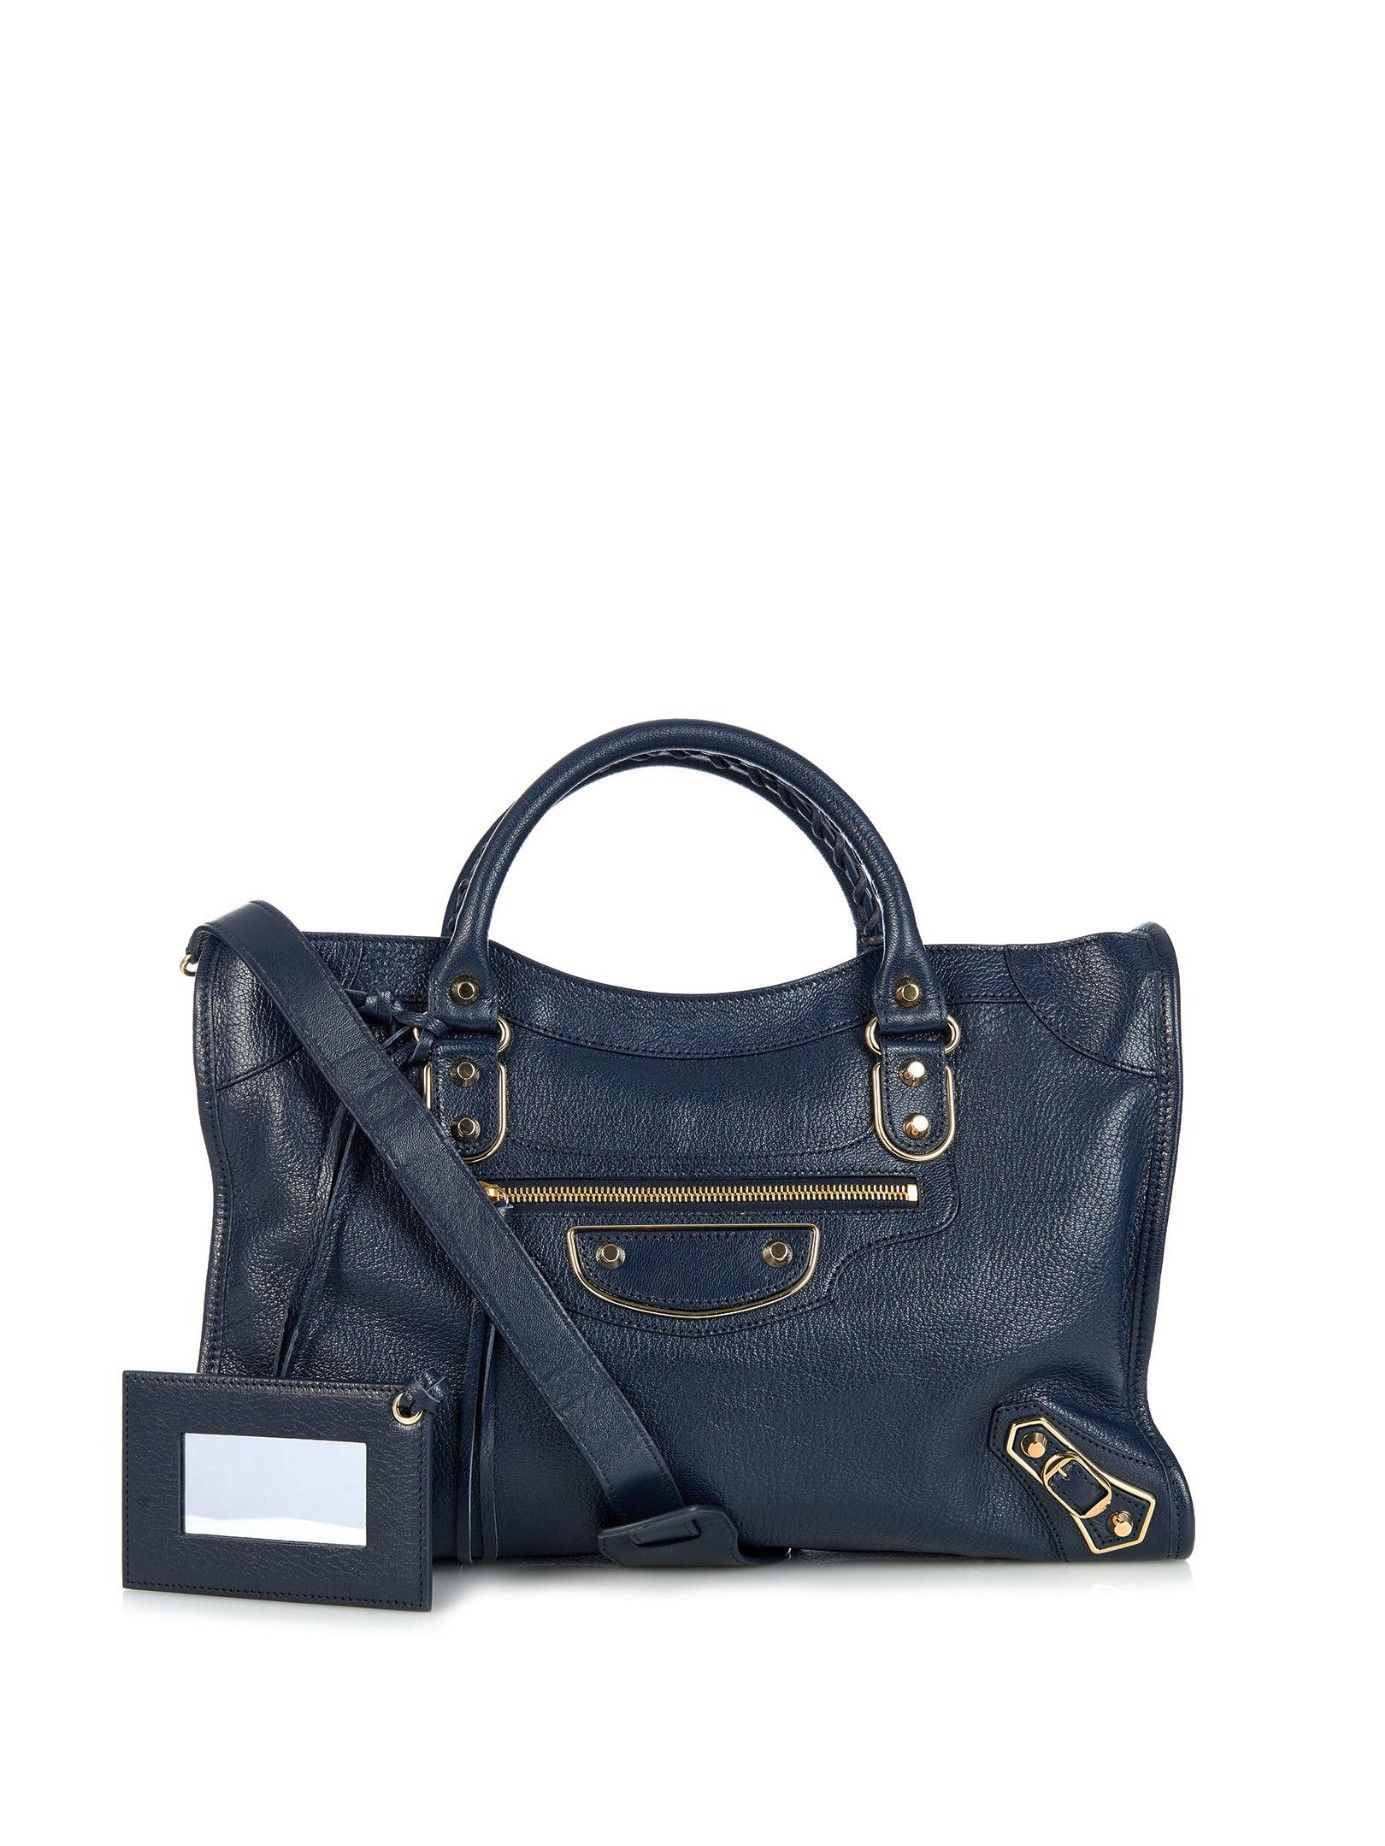 cbdcdcda636 Classic City metallic-edge leather tote | Balenciaga | MATCHESFASHION.COM AU